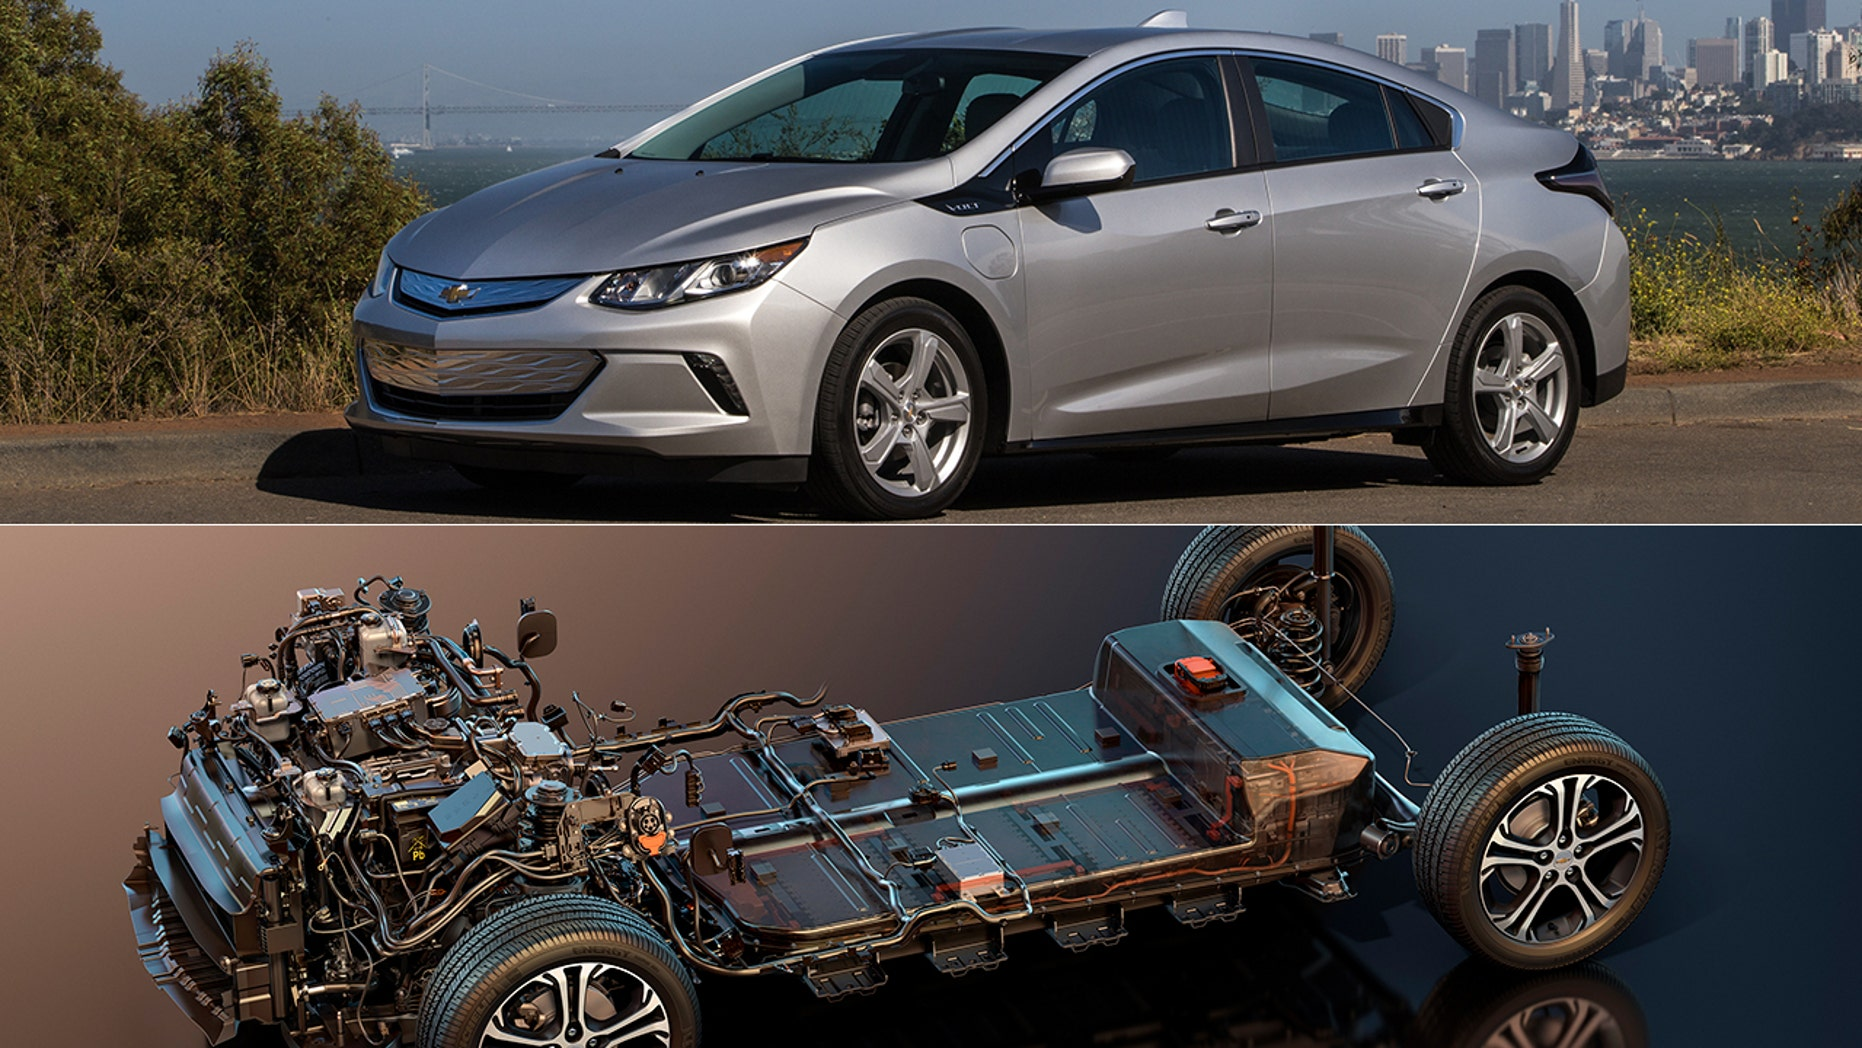 The Chevrolet Volt (top) is being discontinued in favor of vehicles built on fully electric platforms like the Chevrolet Bolt's (bottom).